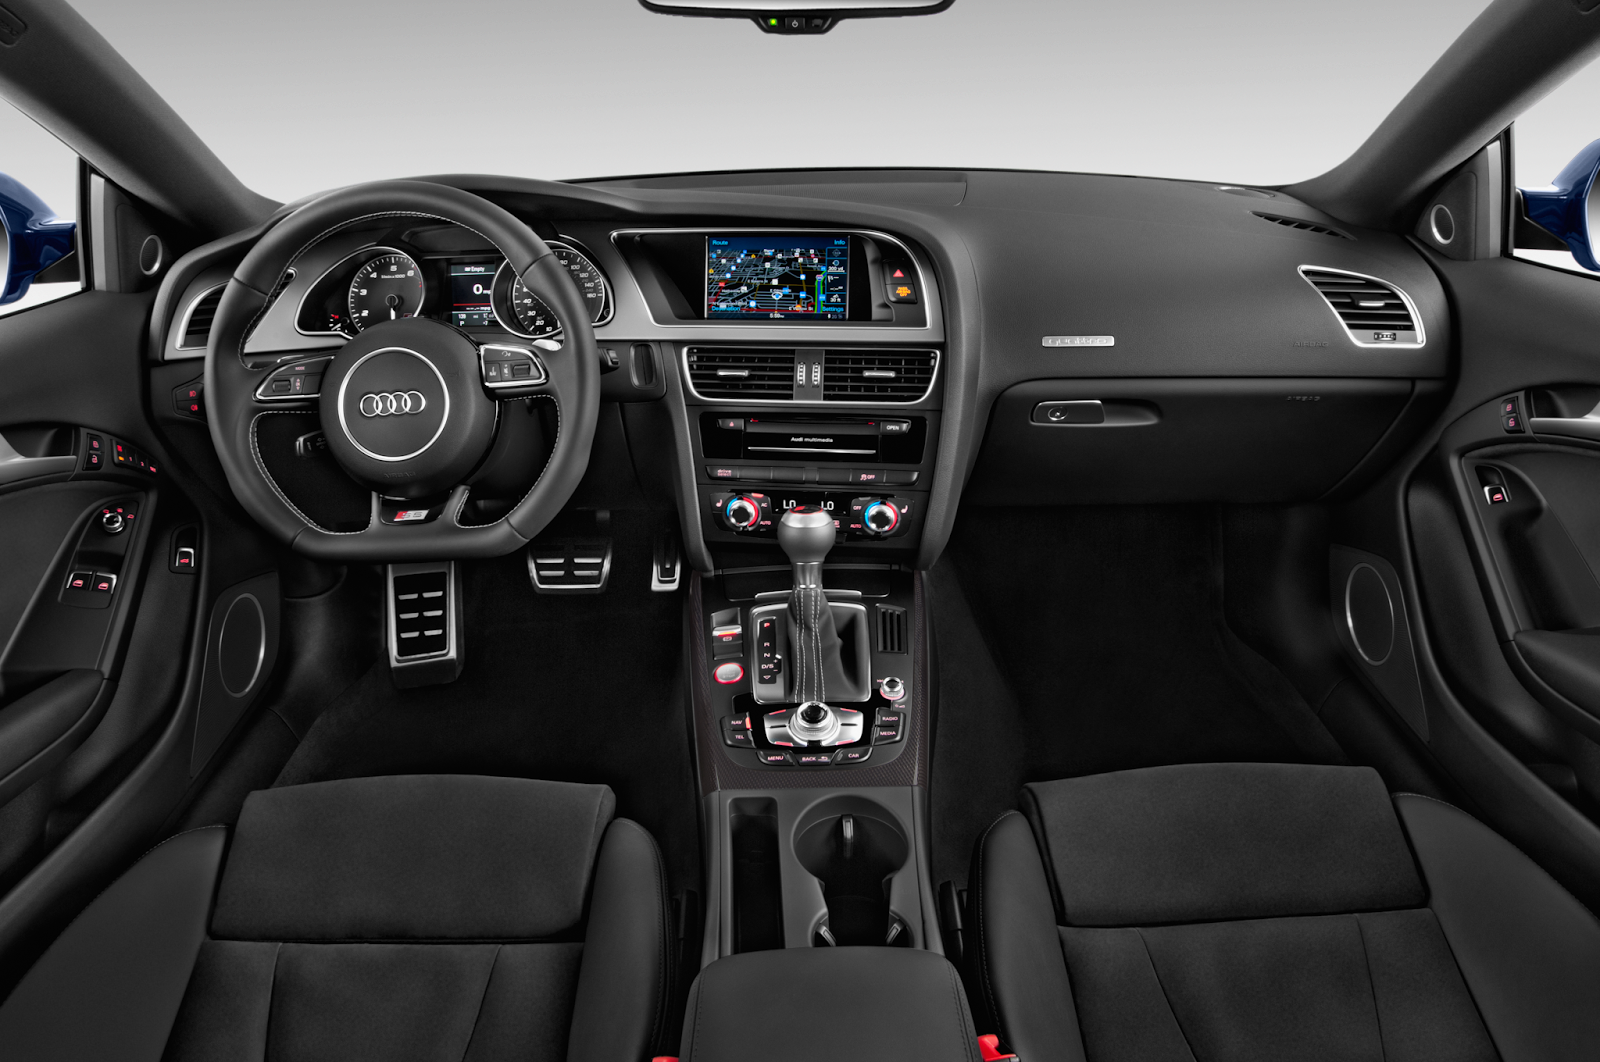 Newcarreport-2016 Audi S5 Interior | NEW CAR REPORT | Pinterest